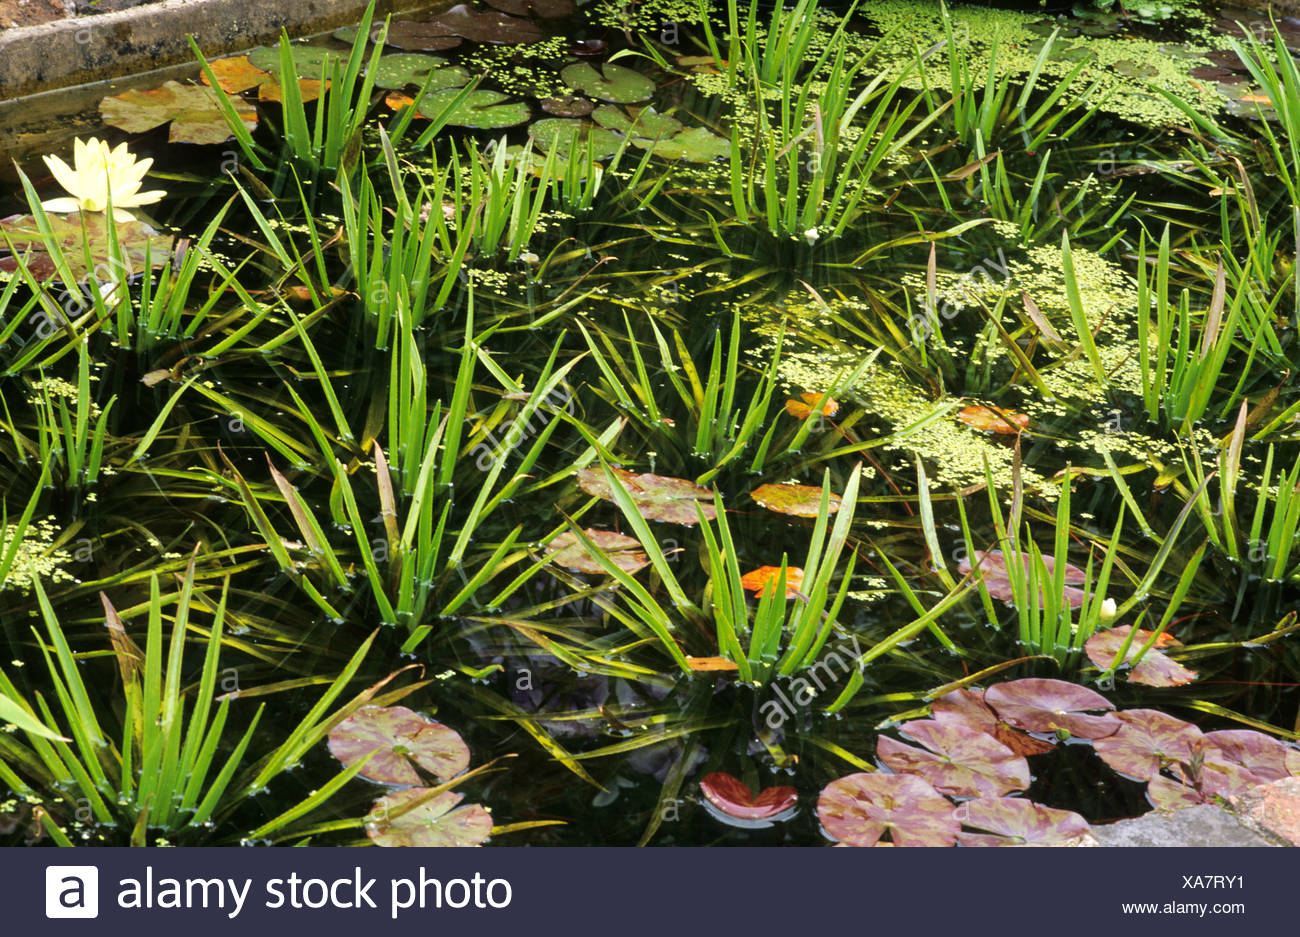 Stratioites aloides, small pond, Water Soldier, water plant, garden soldiers ponds - Stock Image